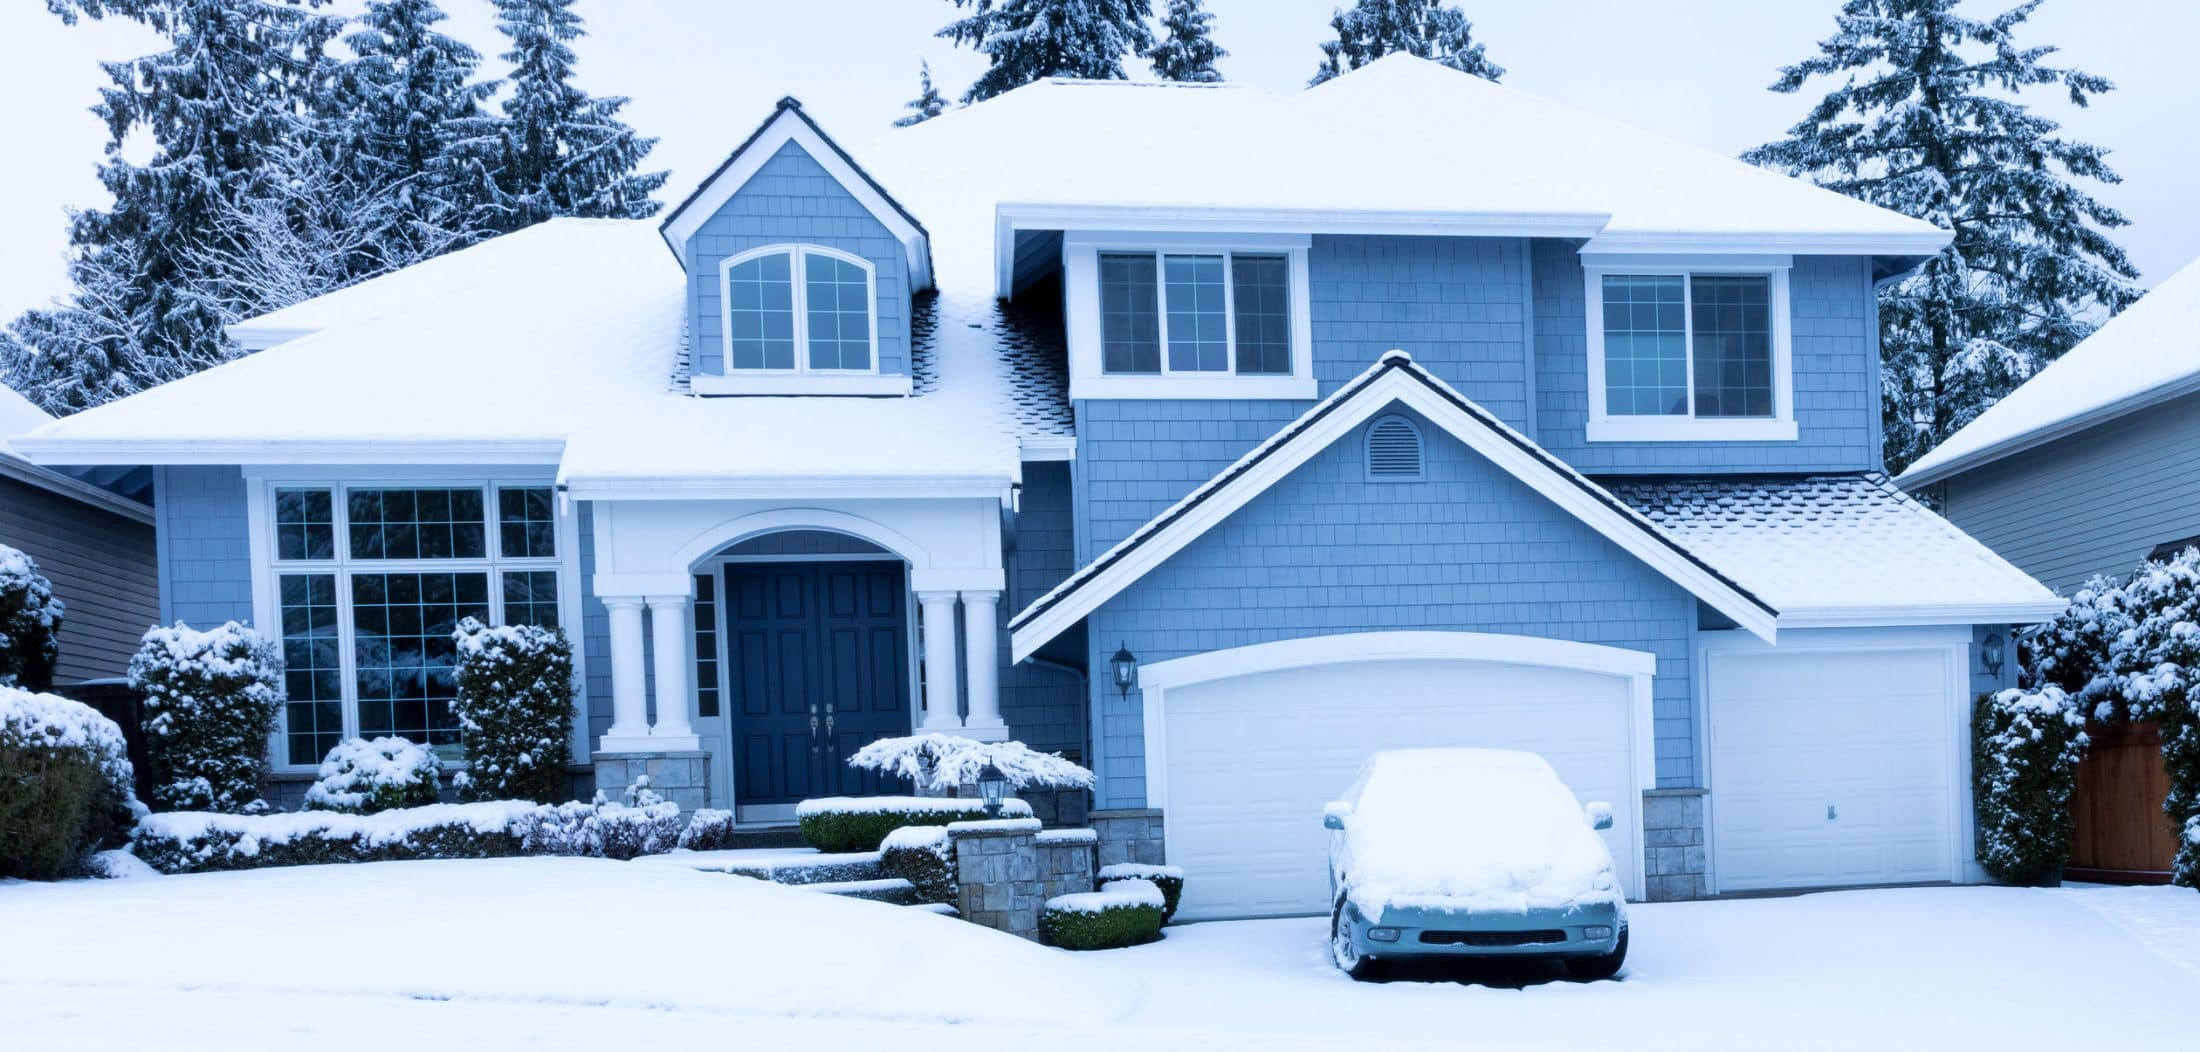 House with snow on it